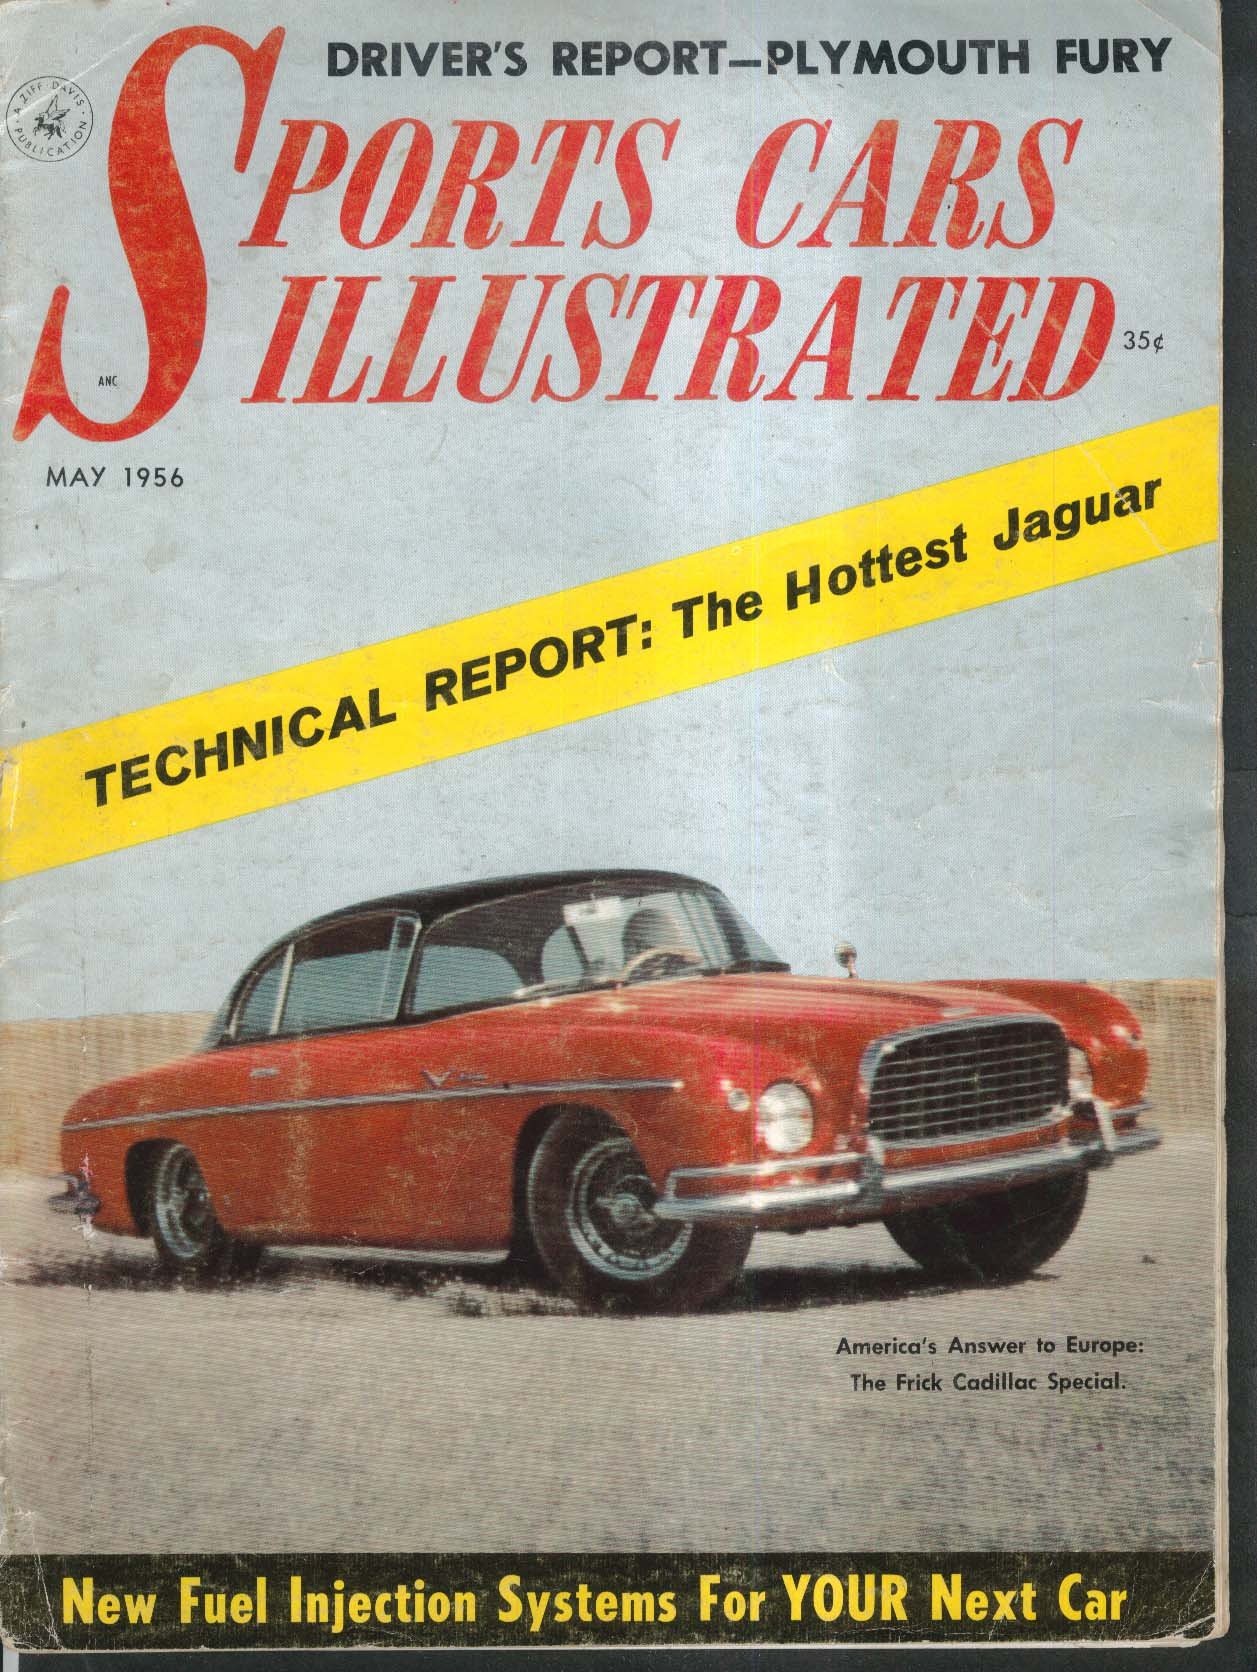 SPORTS CARS ILLUSTRATED Corvette Alfa Romeo Giulietta road tests 5 1956